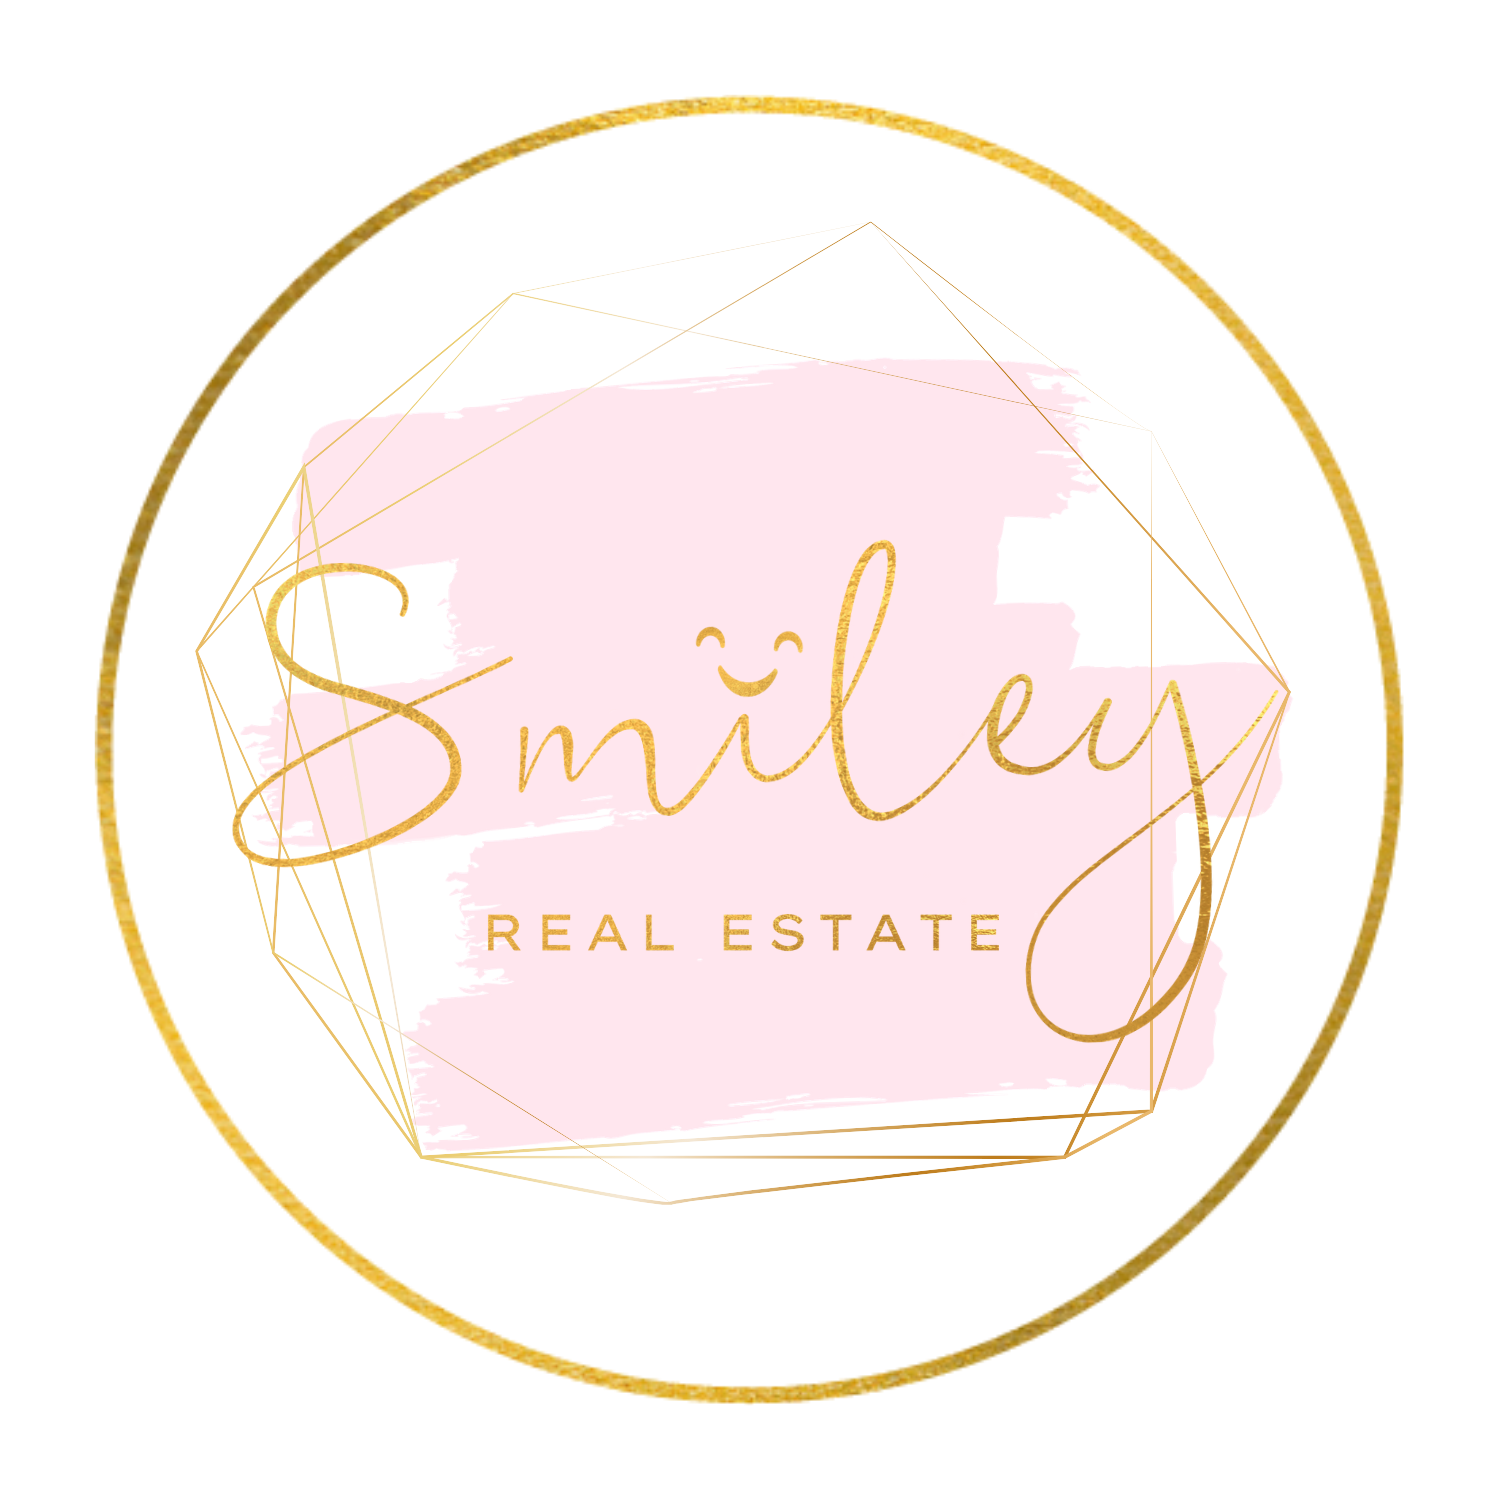 Smiley Real Estate Aruba